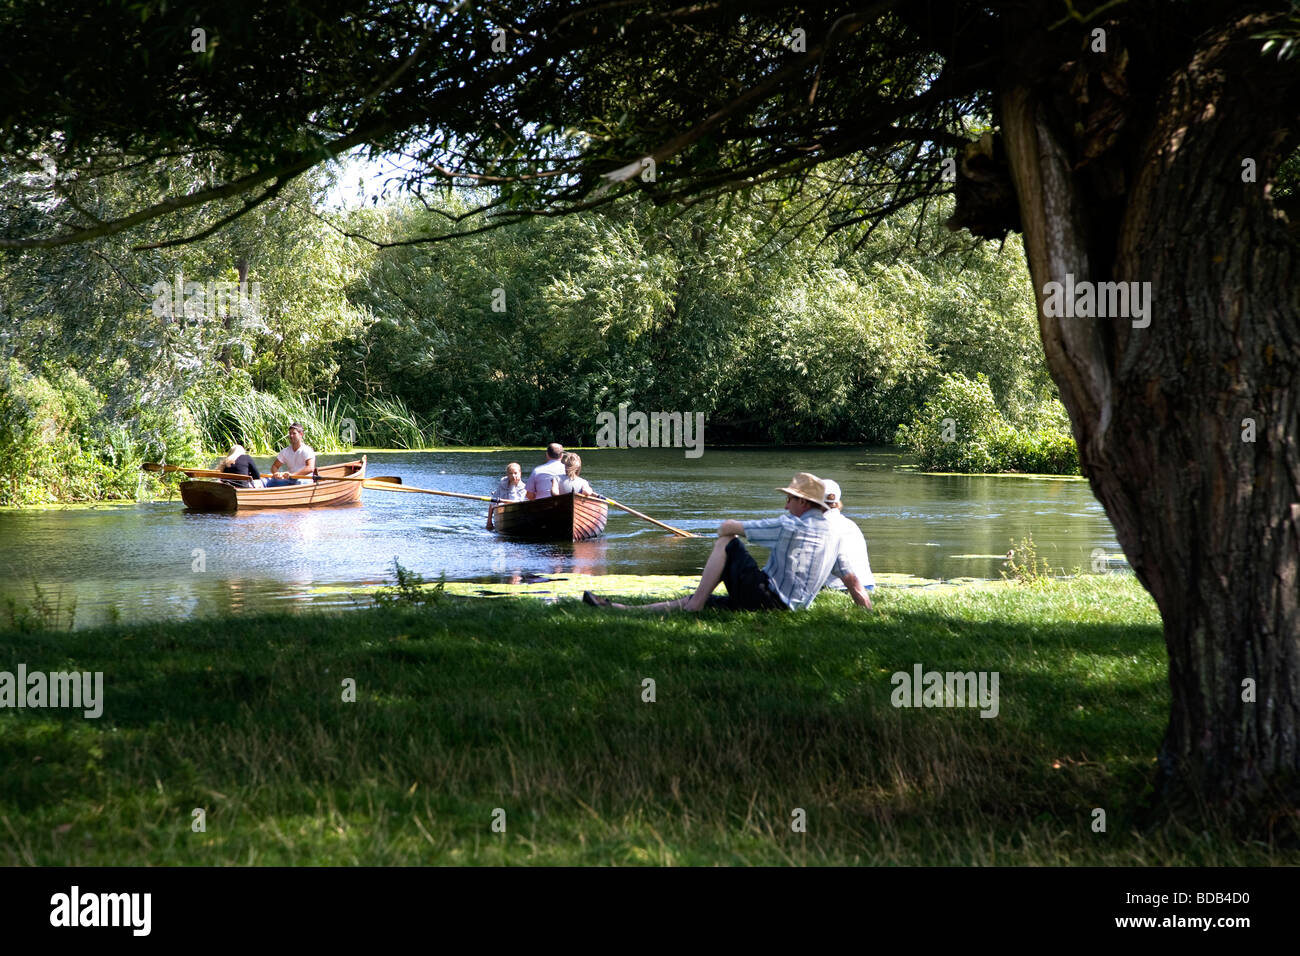 people-boating-on-the-river-stour-with-a